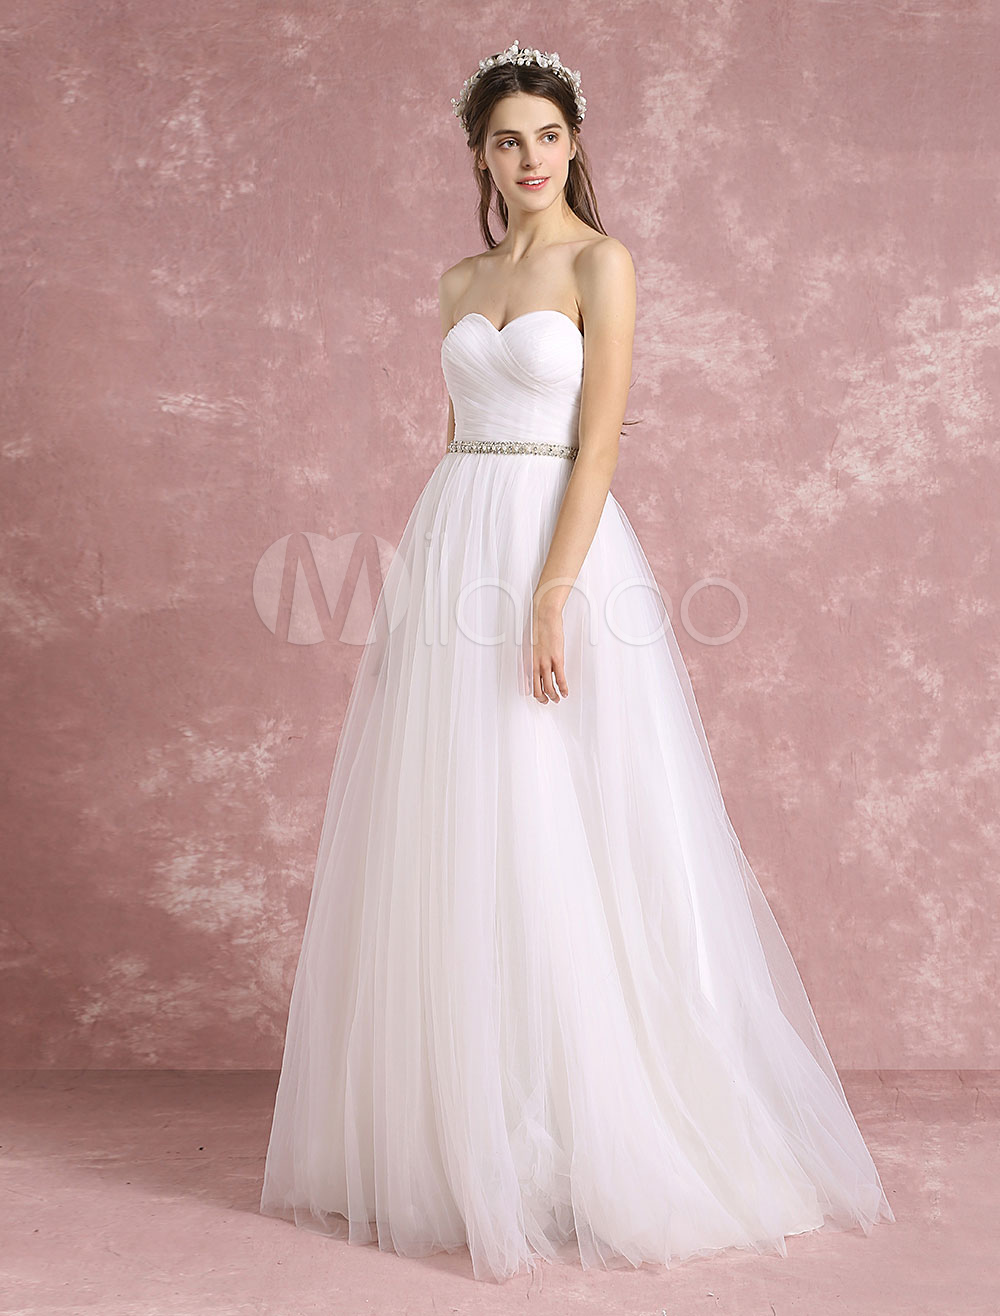 Buy Summer Wedding Dresses 2018 Boho Backless Bridal Gown Sweetheart Strapless Tulle Beaded A Line Maxi Bridal Dress for $152.99 in Milanoo store